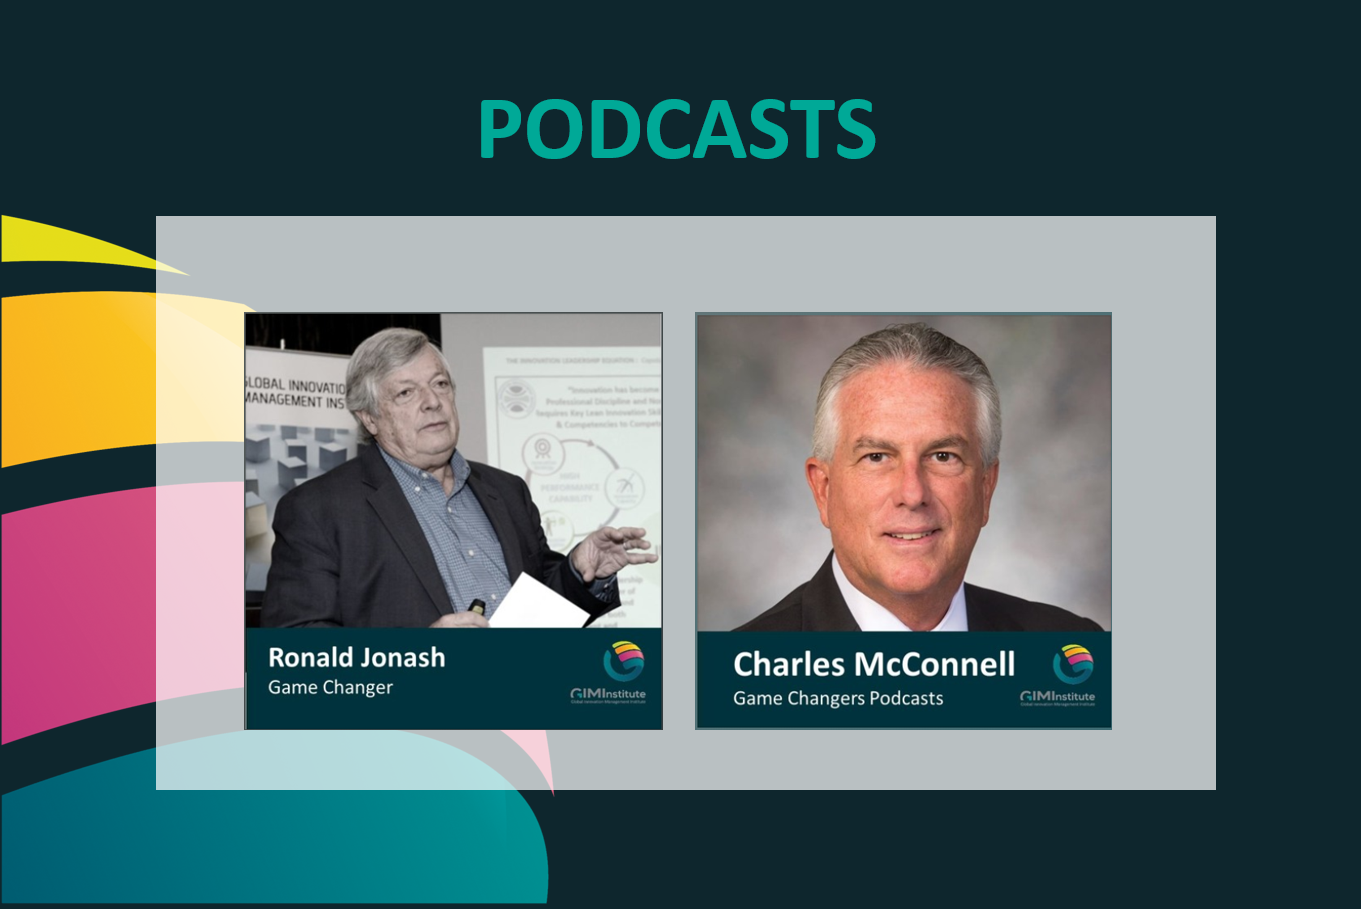 Podcasts Game Changers - global innovation management institute